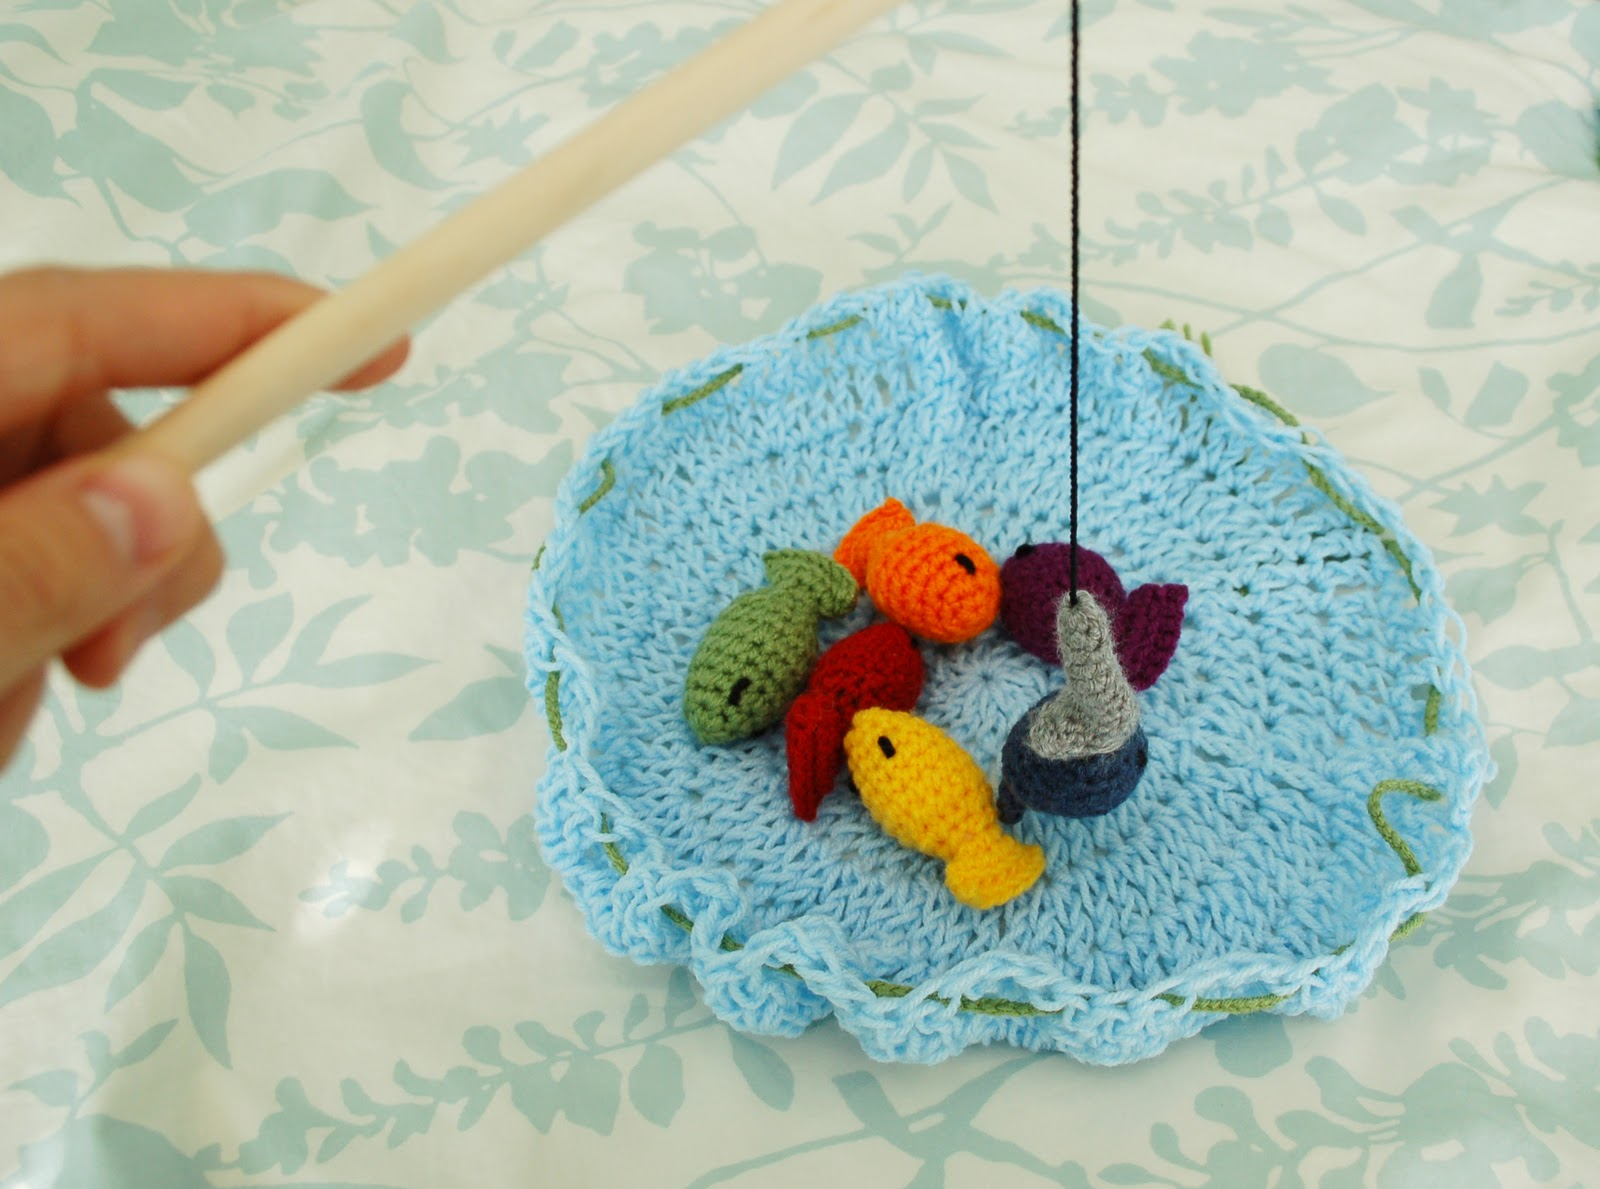 Free Crochet Patterns Games : 2000 Free Amigurumi Patterns: Fishing Game Toy